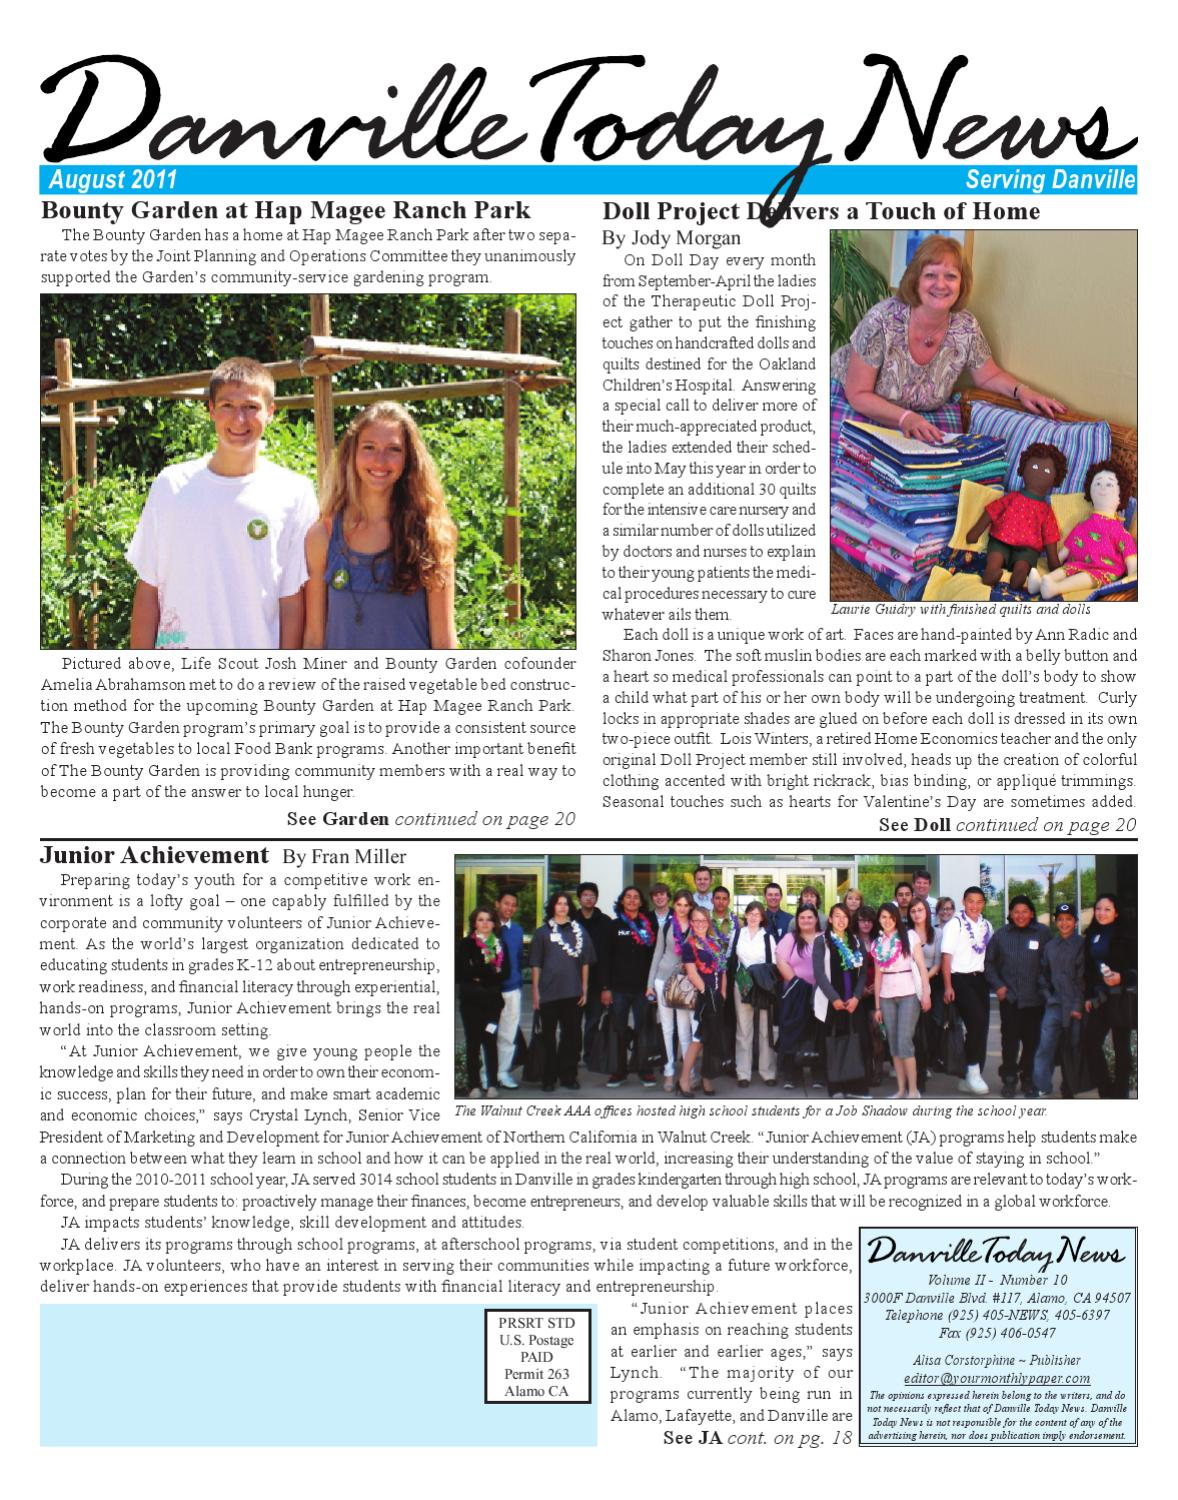 danville today news august 2011 by the editors inc issuu